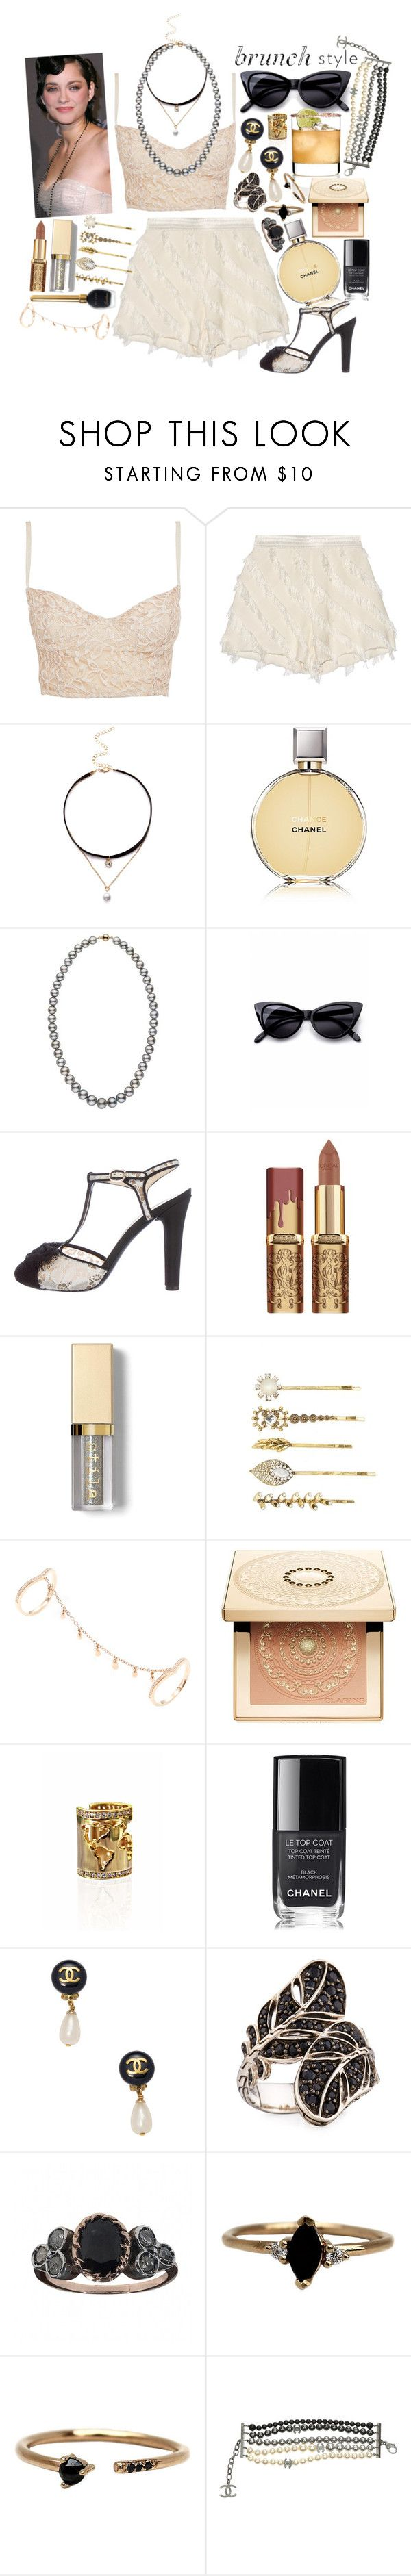 """Just Another Day - Lady Gaga"" by leo8august ❤ liked on Polyvore featuring Miso, Sandro, Chanel, Retrò, Stila, Tasha, Shay, Clarins, Artelier and John Hardy"